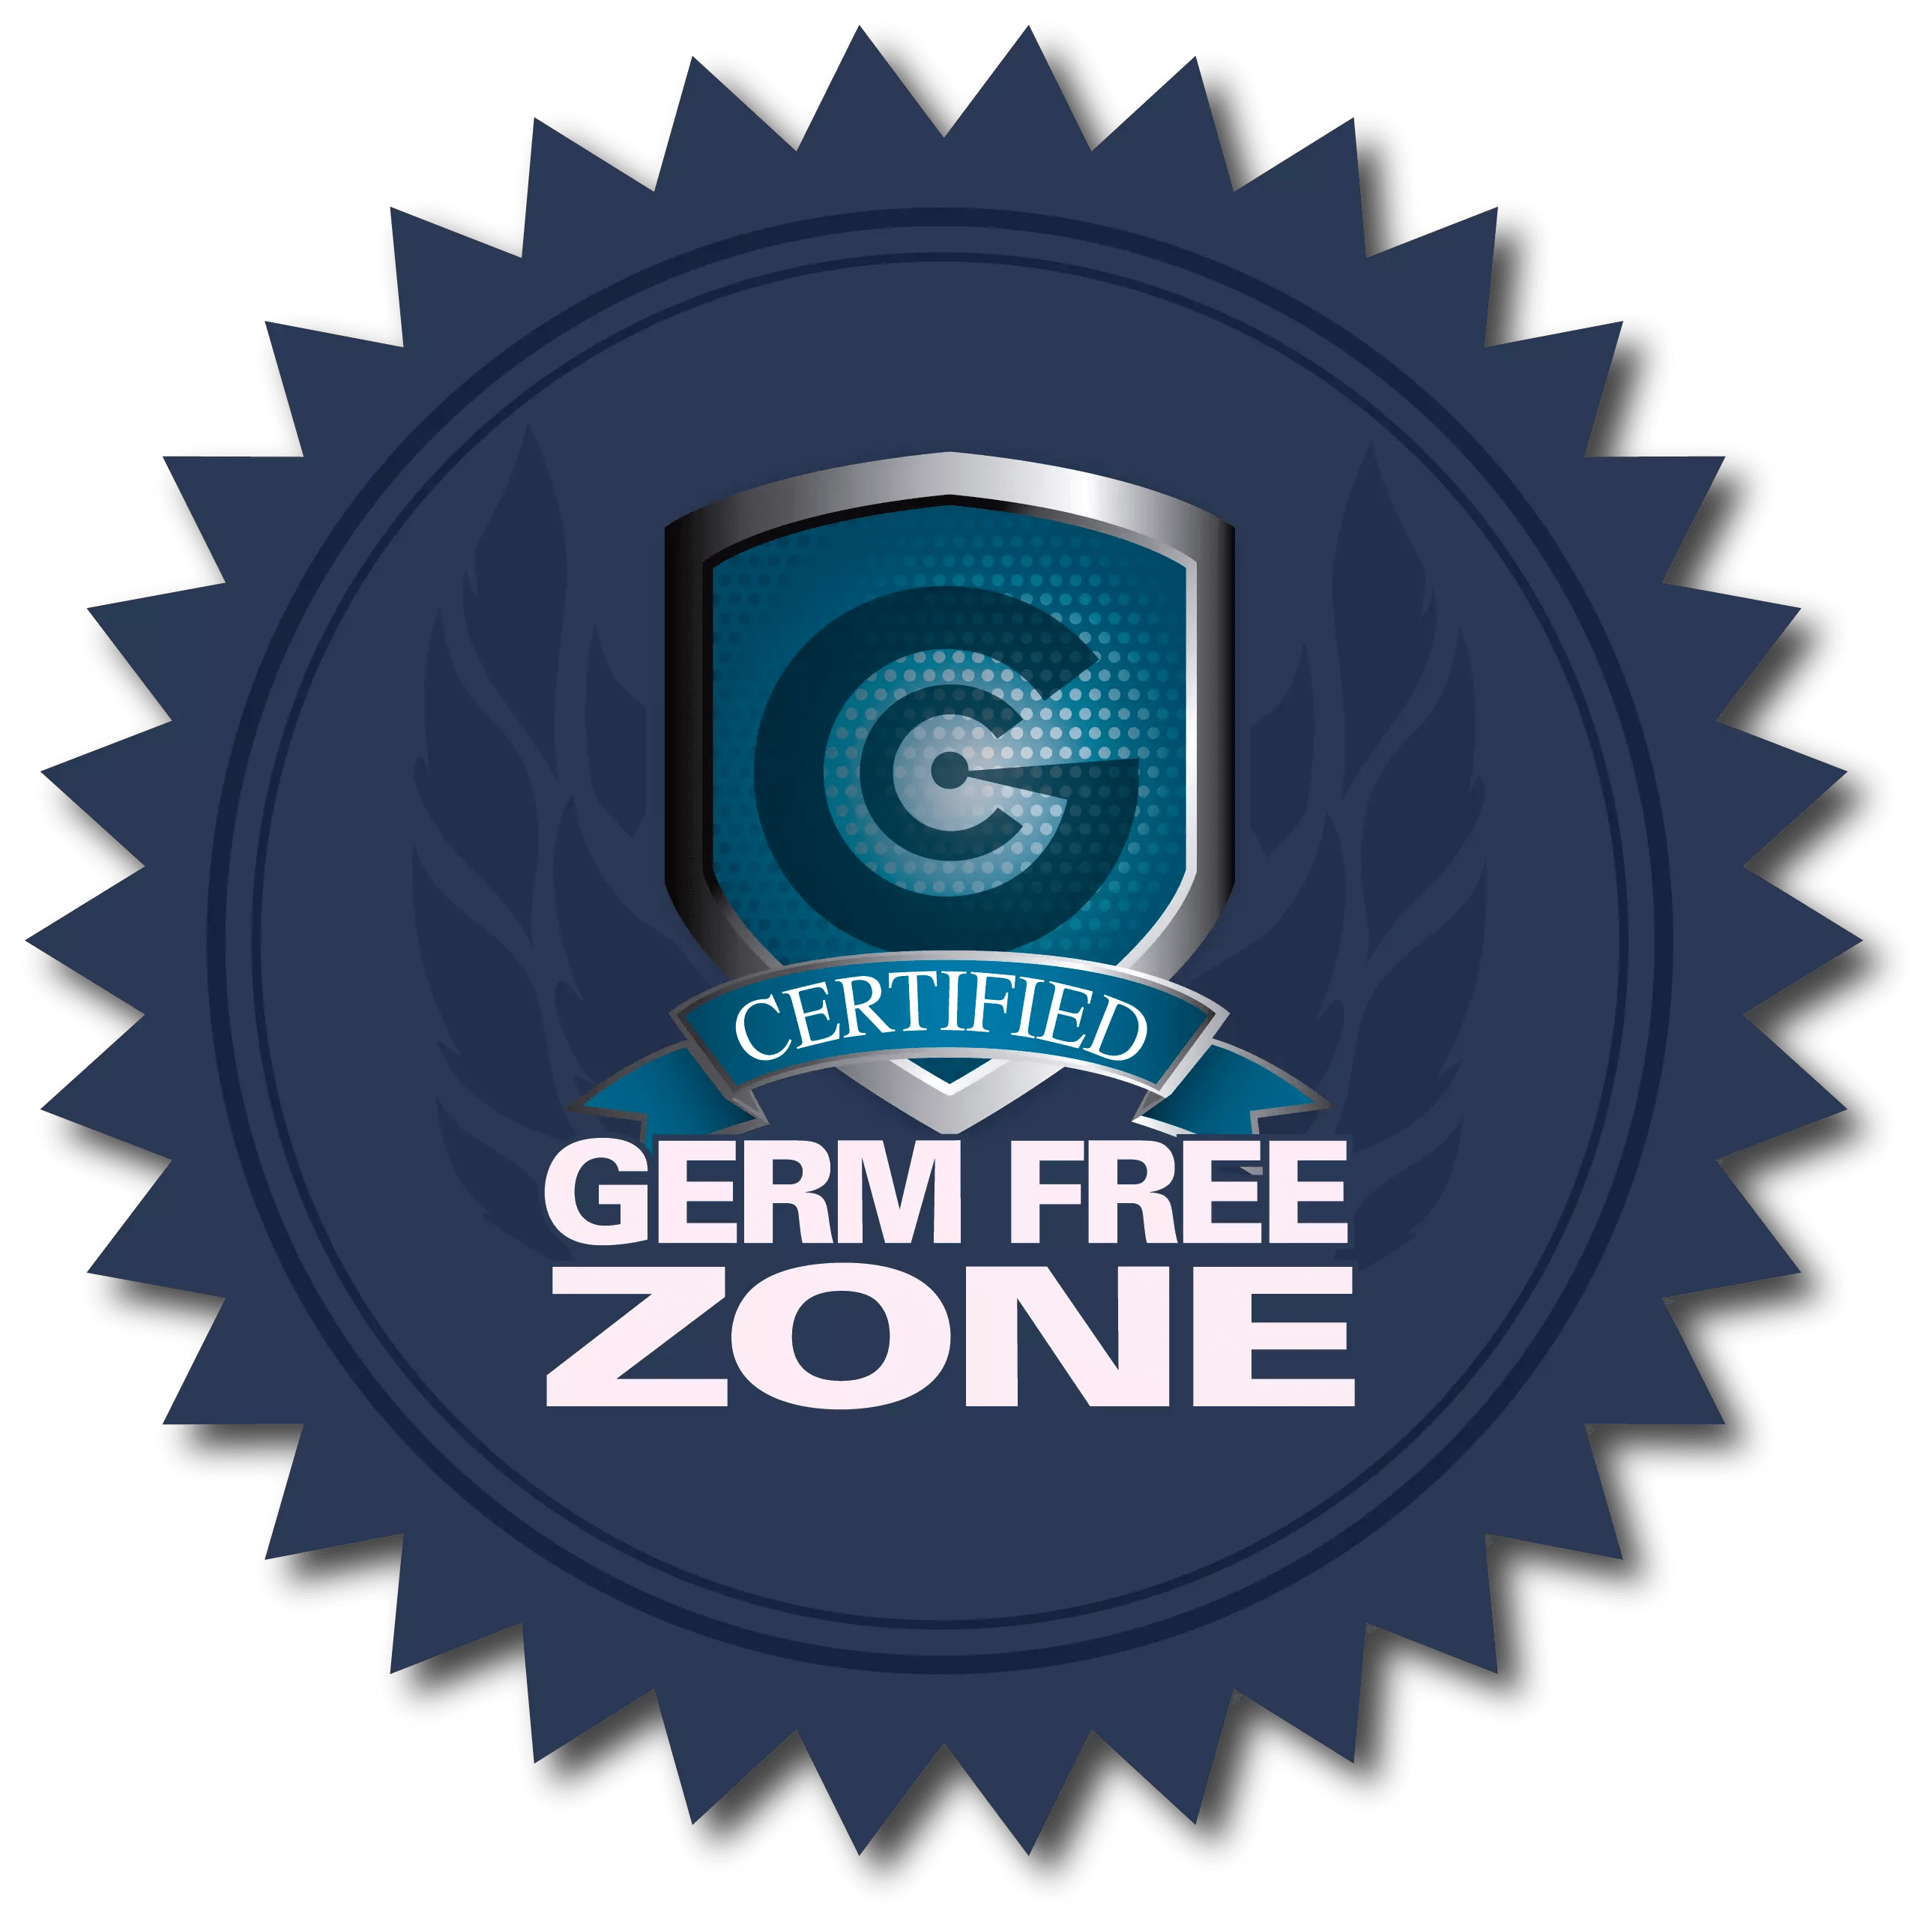 Germ Champs Germ Free Seal Germ Disinfection Services Germ Free Zone